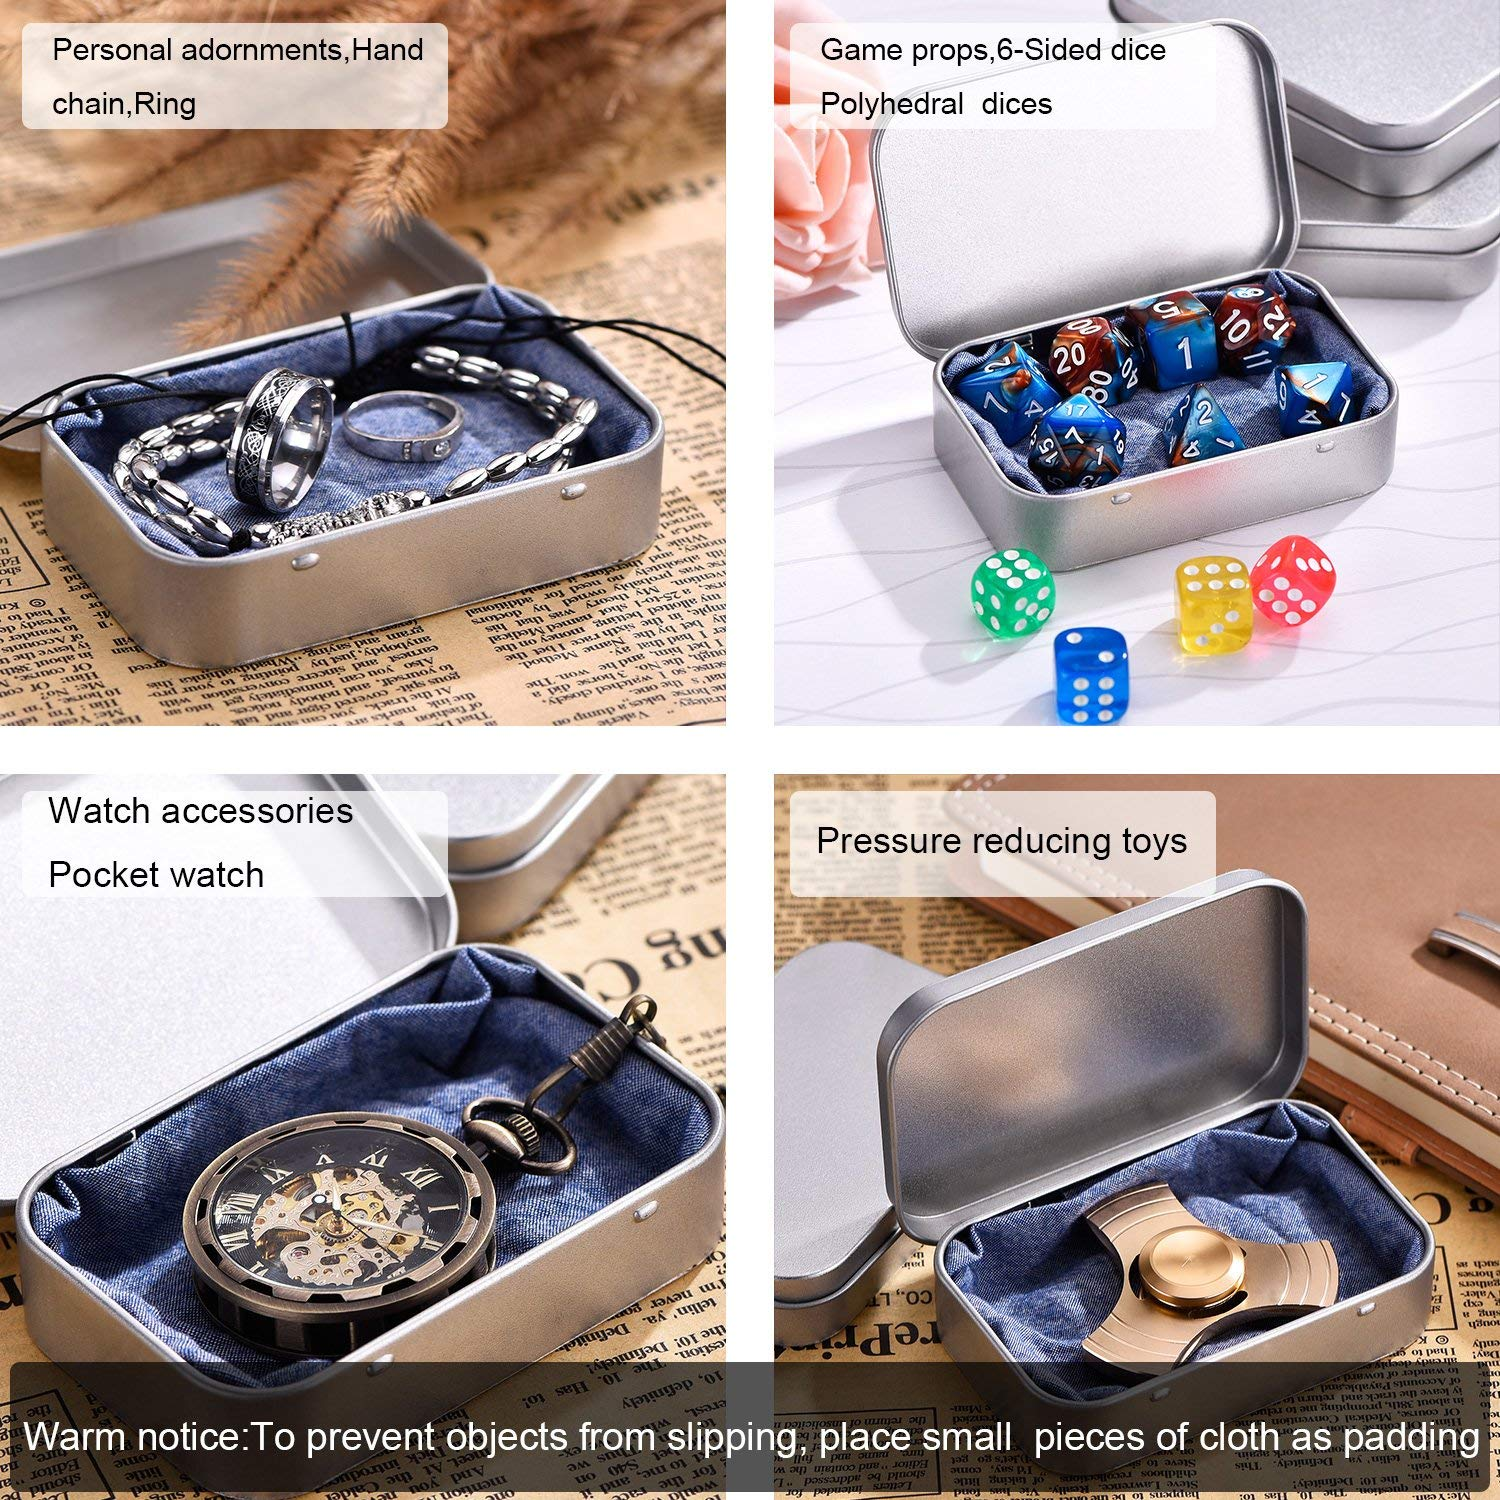 Home Organizer 12 Pack 3.54 by 2.36 by 0.78 Inch Silver Metal Rectangular Empty Hinged Tins Box Containers Mini Portable Box Small Storage Kit